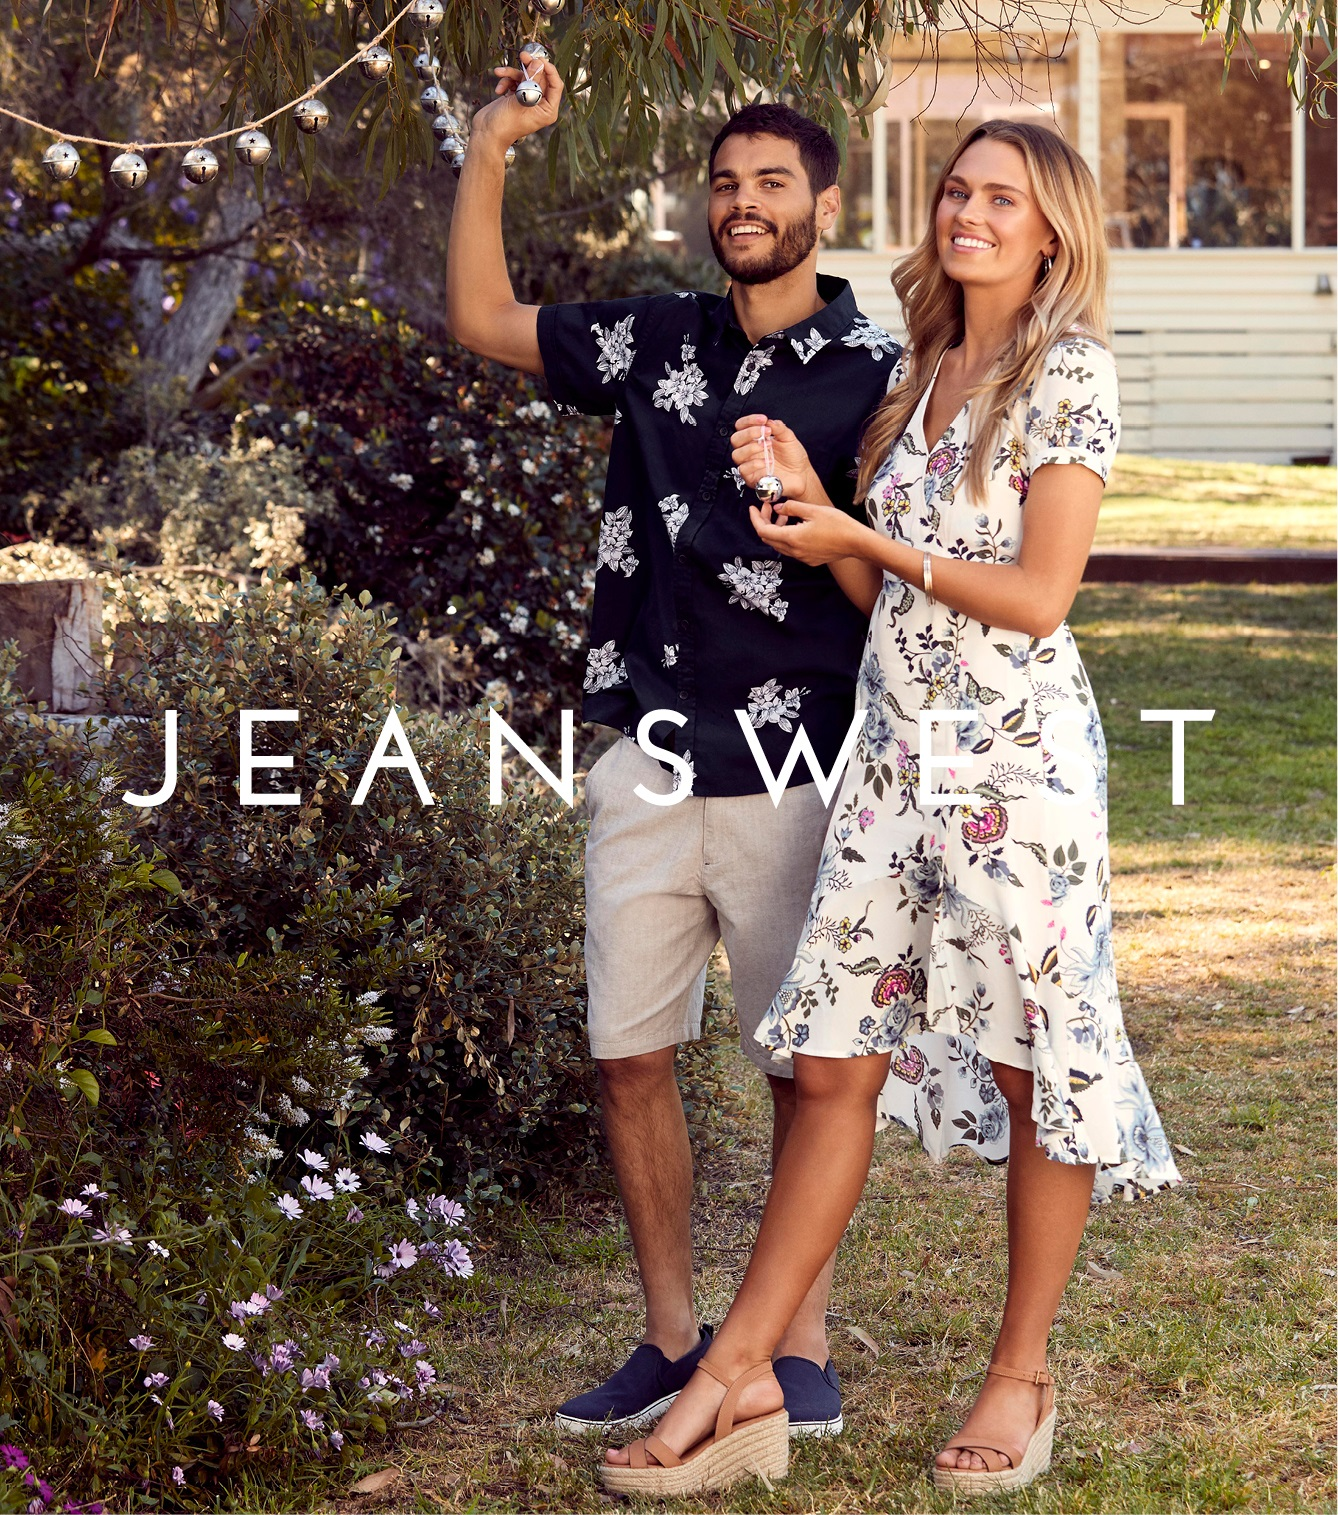 40% off at Jeanswest. T&Cs apply, while stocks last.